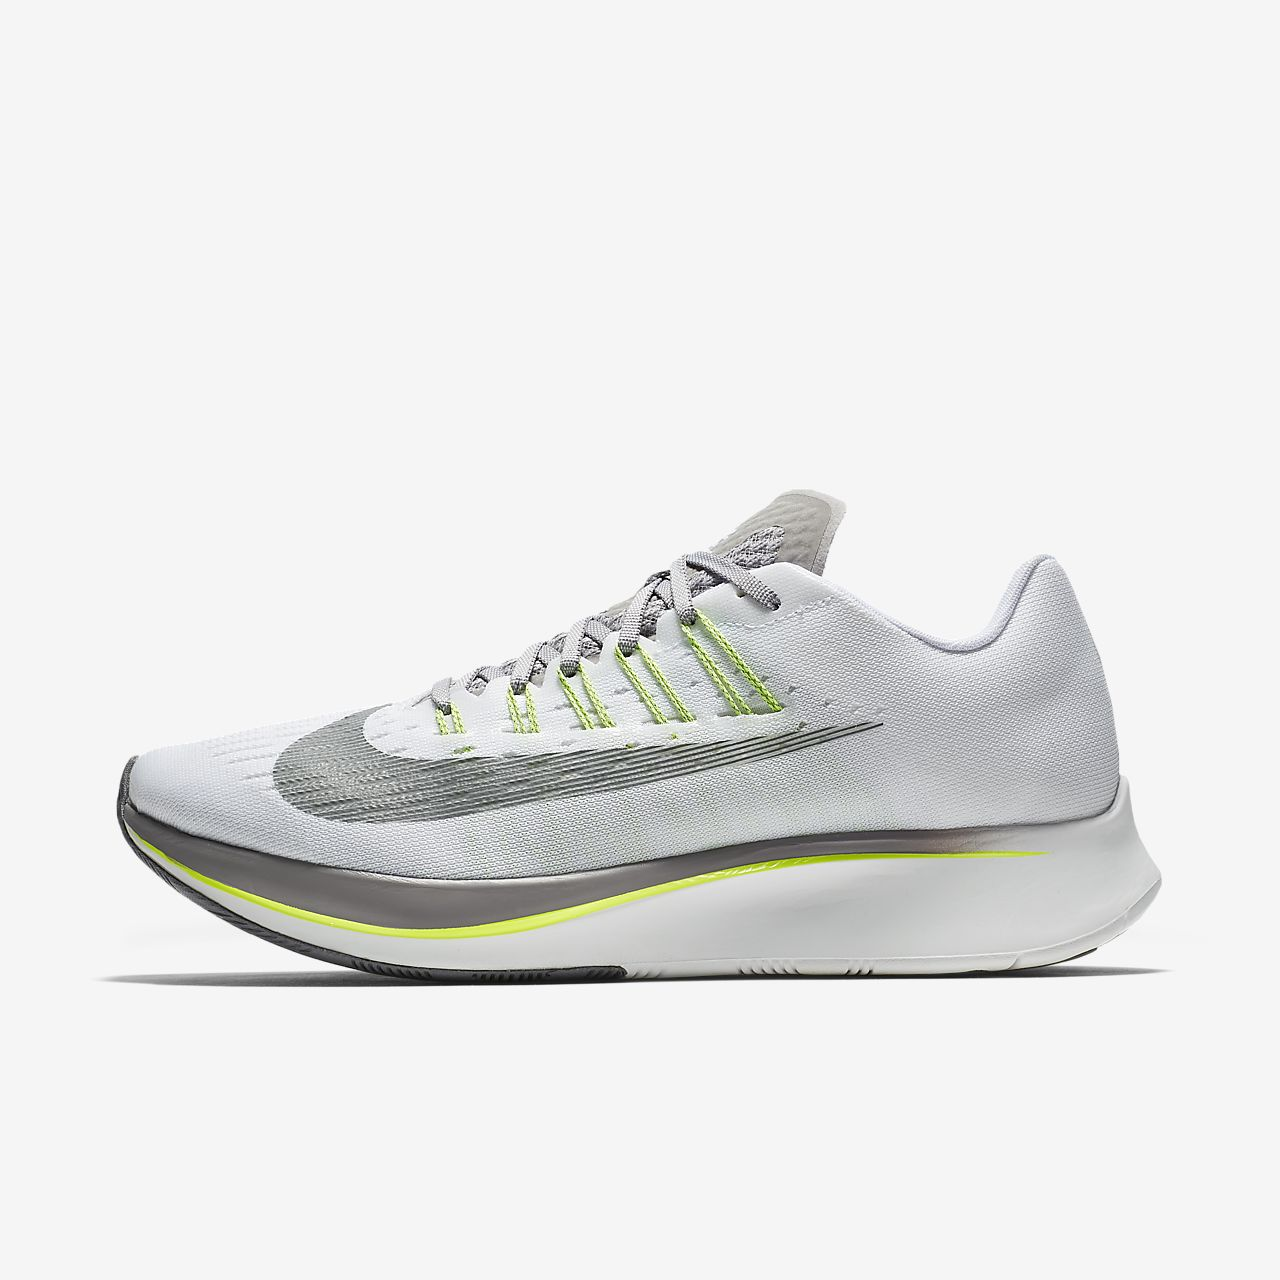 sports shoes ef9e3 c5eb3 ... Nike Zoom Fly Men s Running Shoe